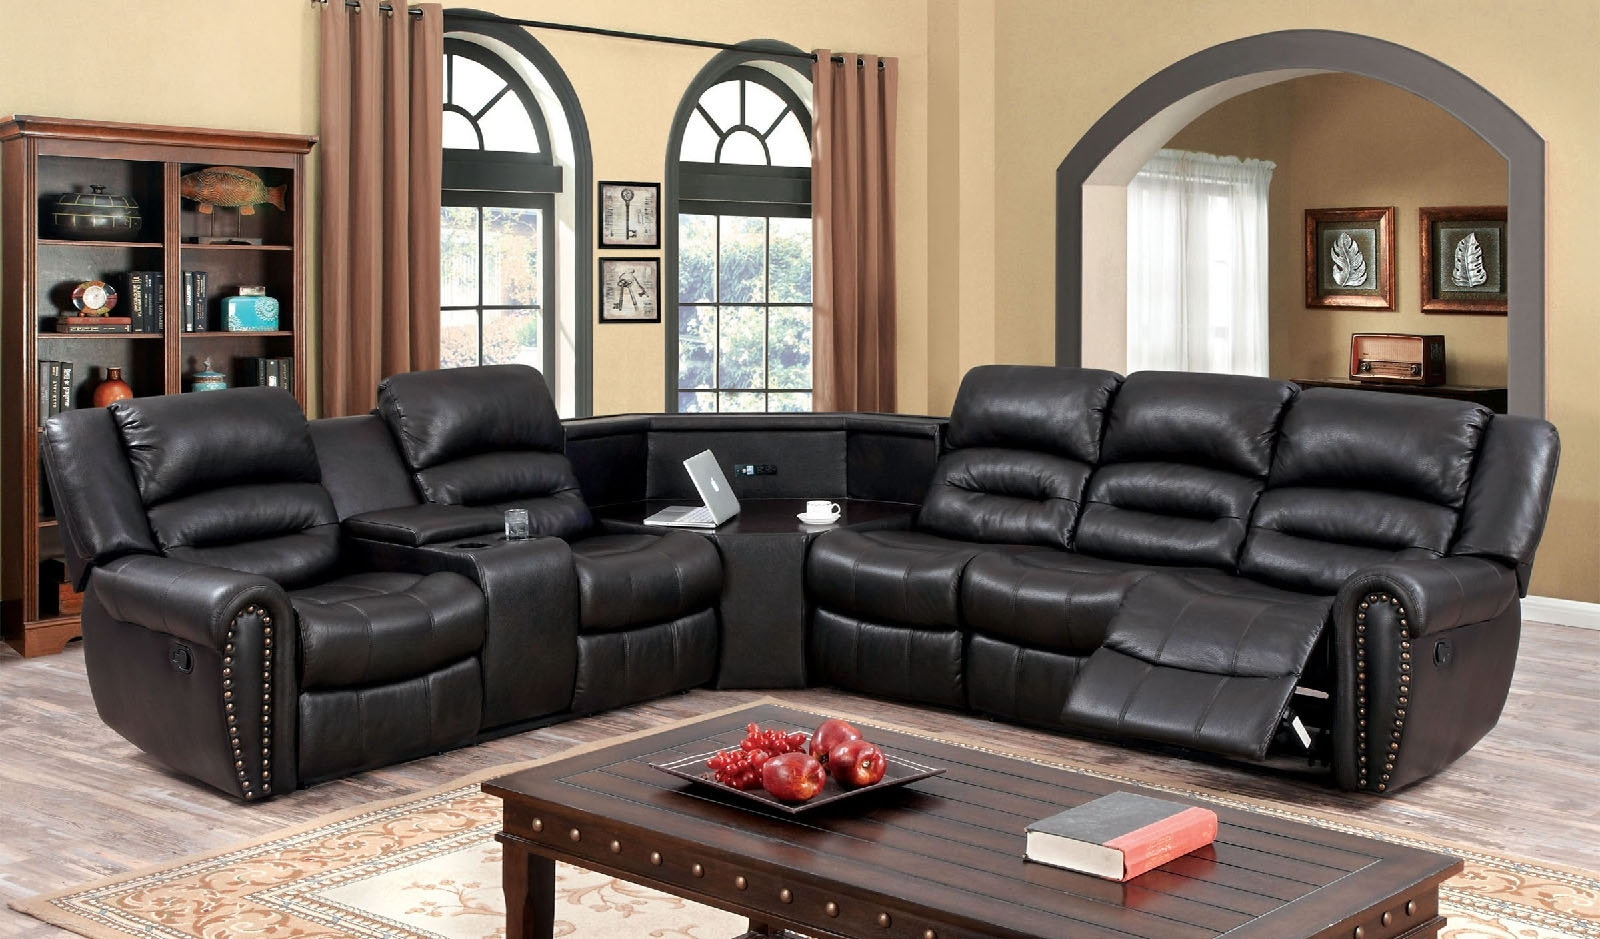 Amazing Sectional Couch With Cup Holders 77 Sofas And Couches Set Pertaining To Sectional Sofas With Cup Holders (Image 1 of 10)